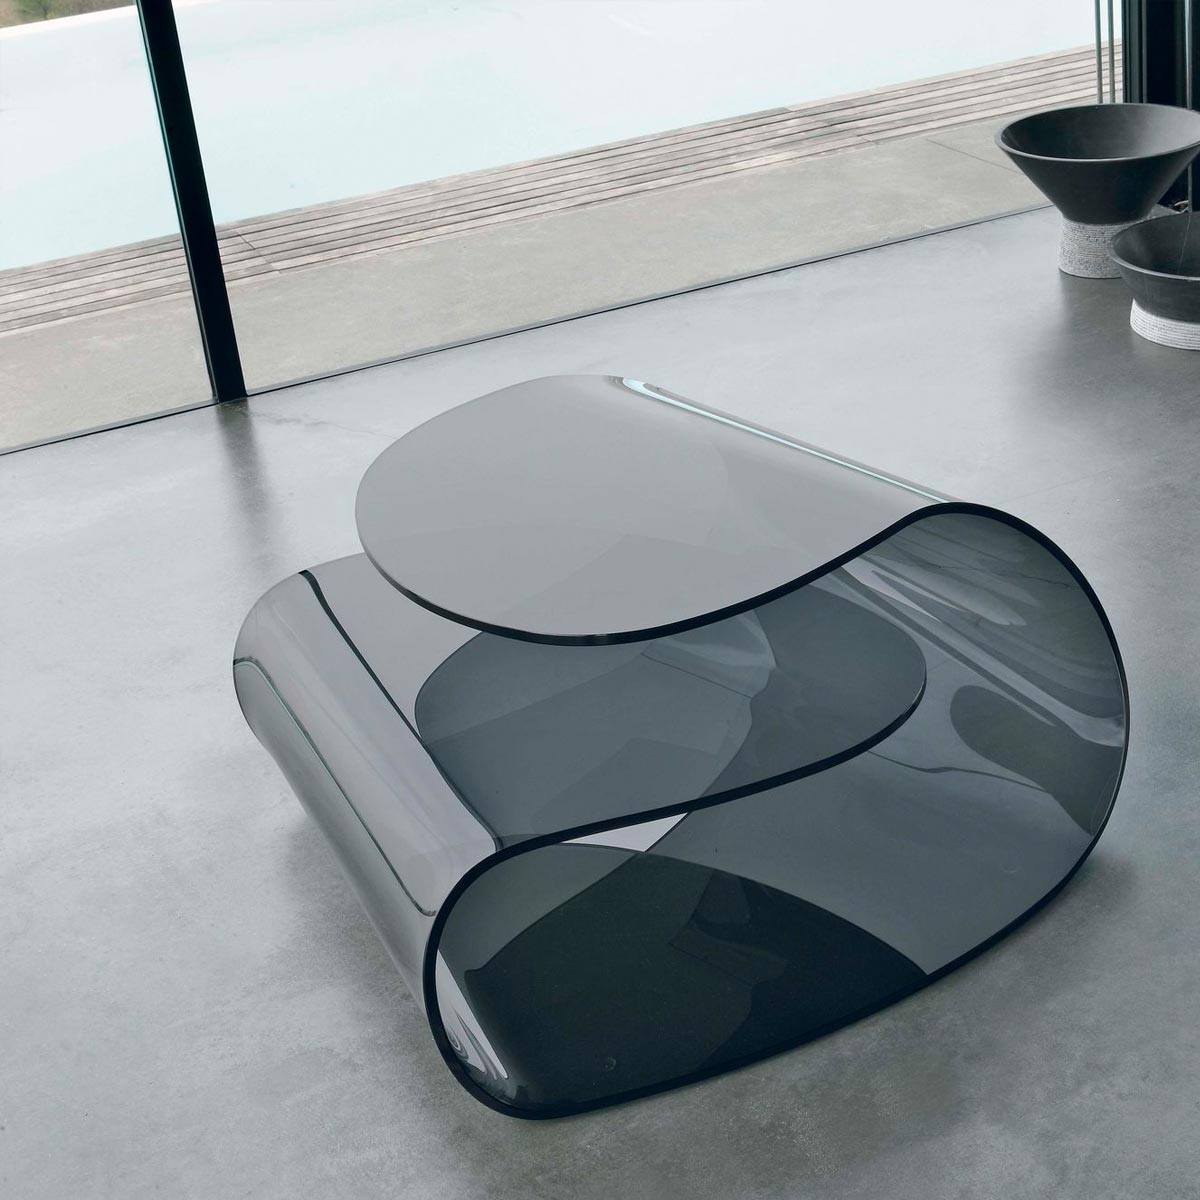 Volup Curved Glass Coffee Table